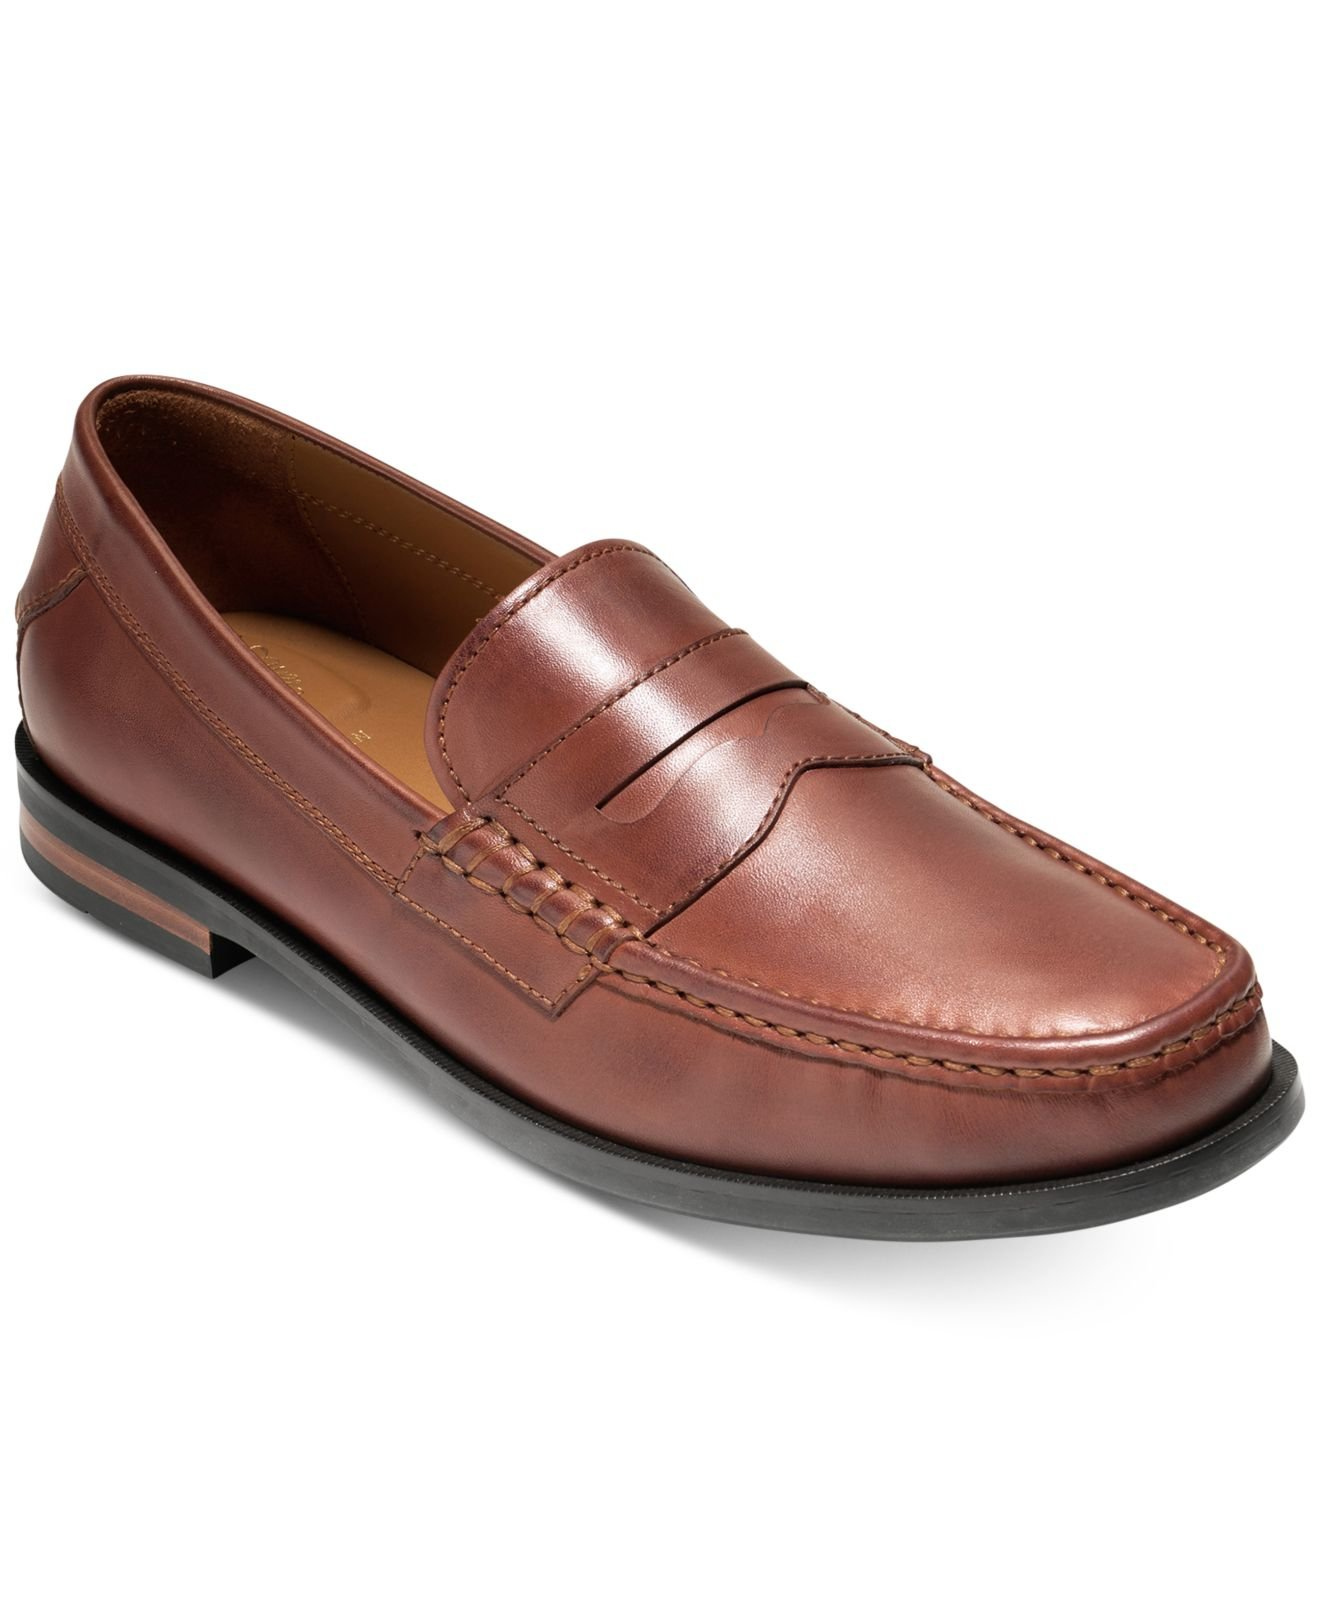 Cole Haan Mens Slip On Shoes